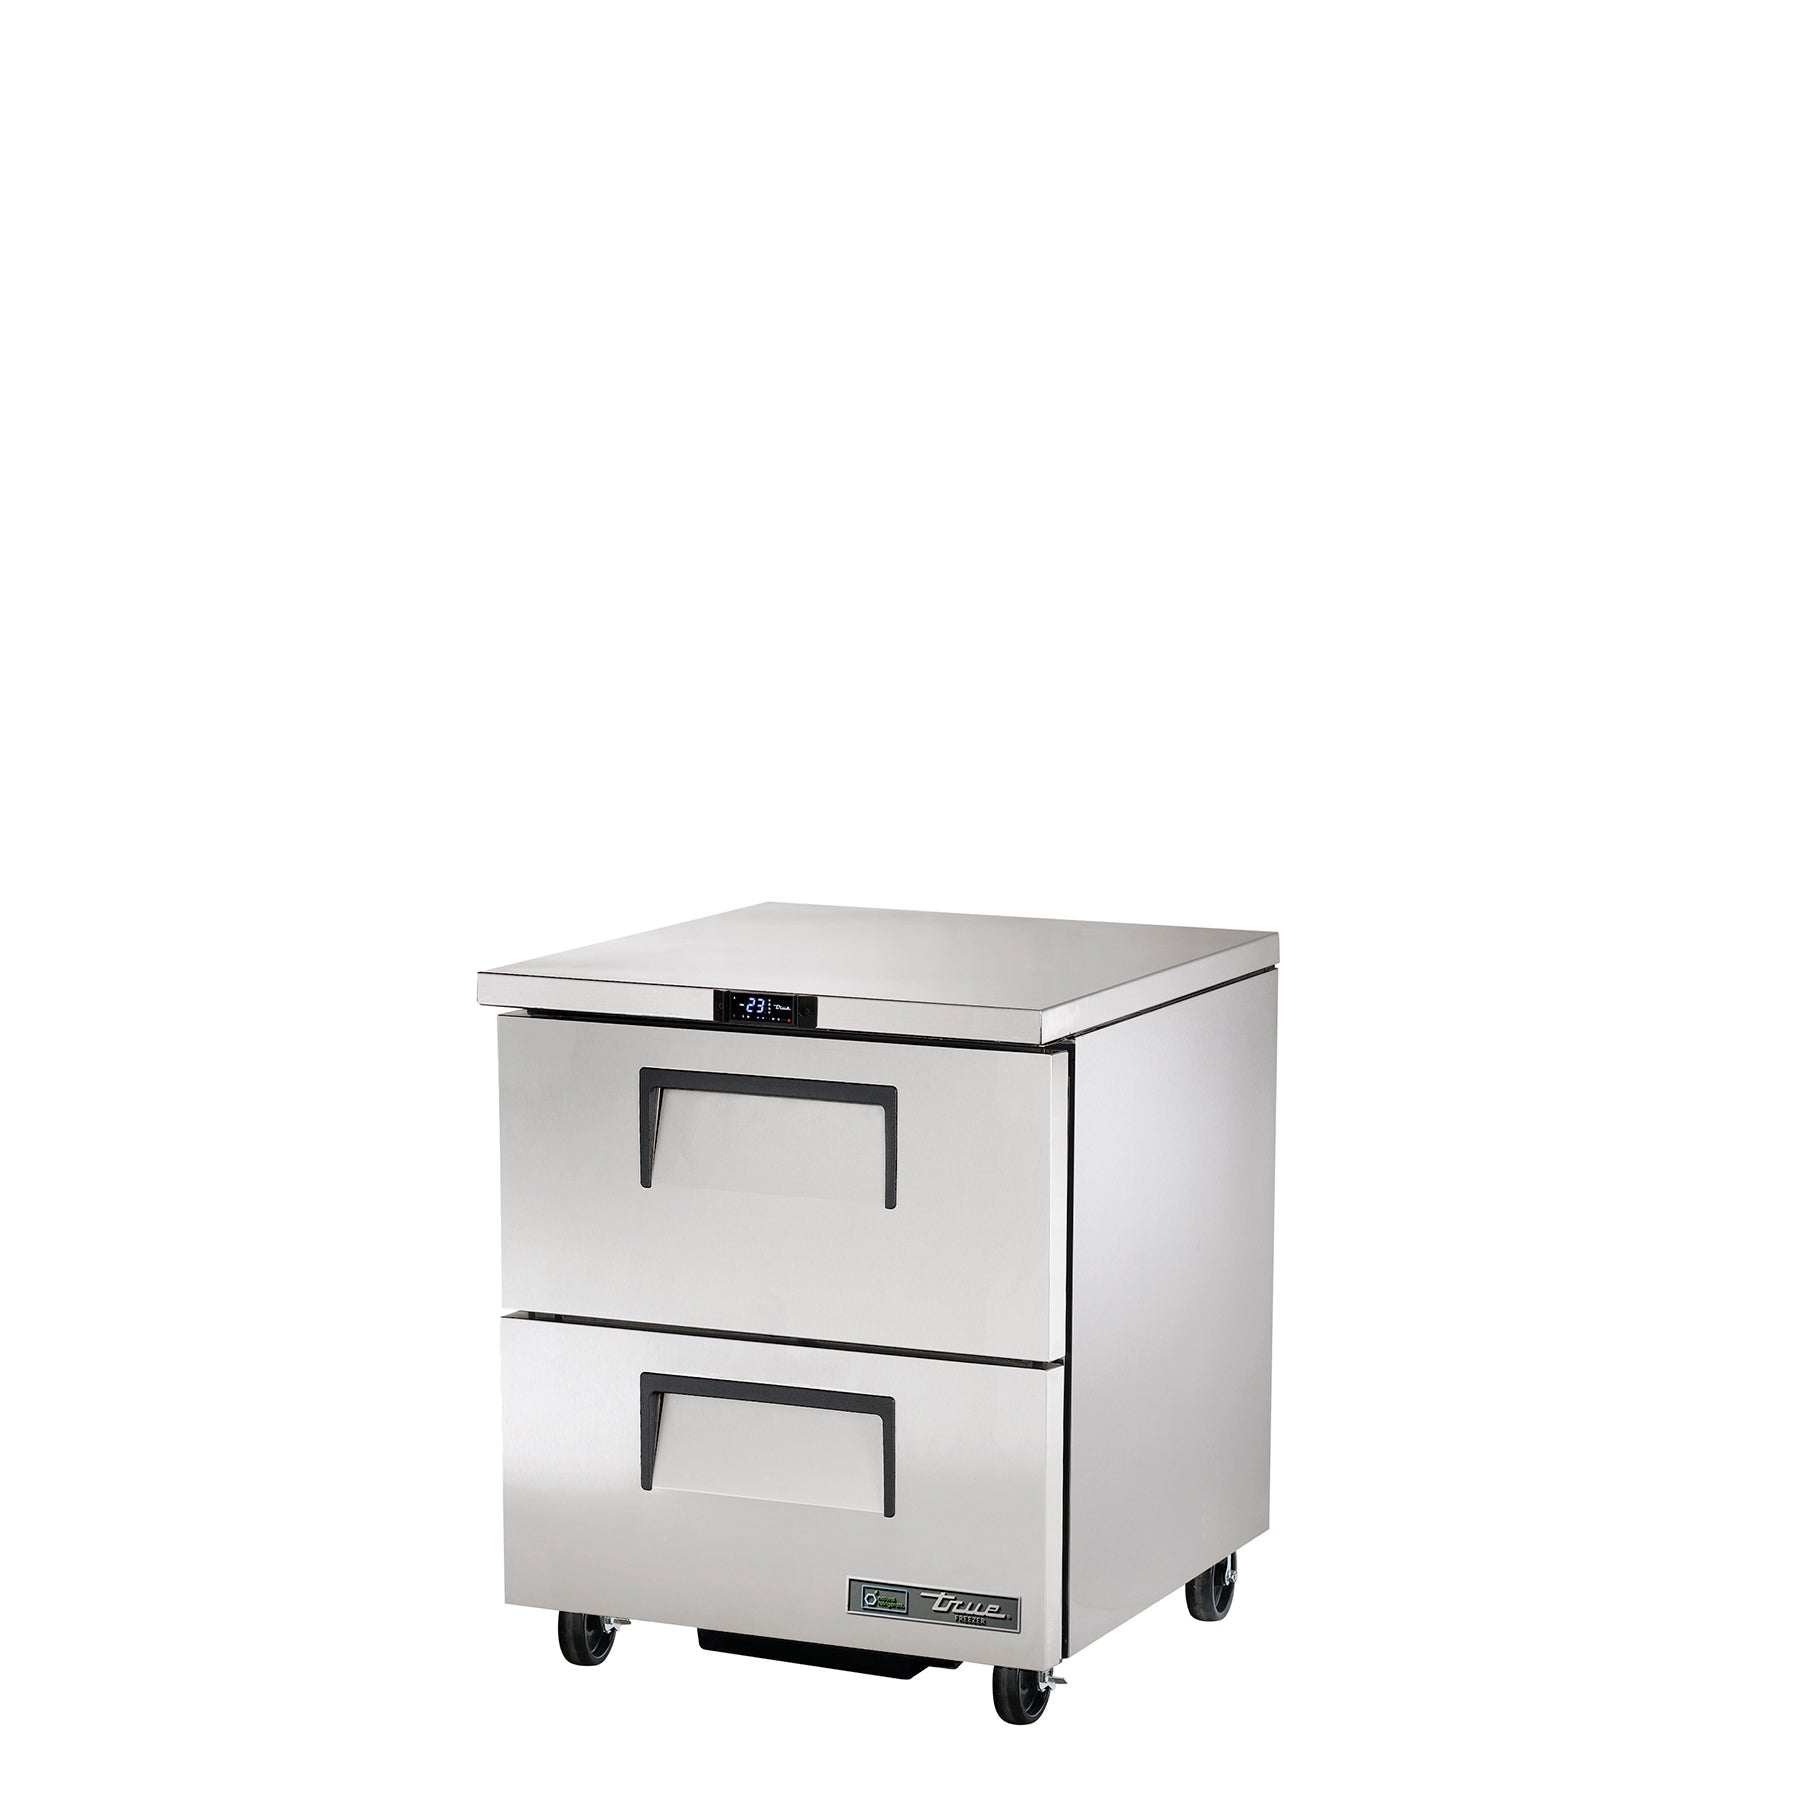 UNDERCOUNTER FREEZER, 2 DRAWERS - TUC-27F-D-2-HC